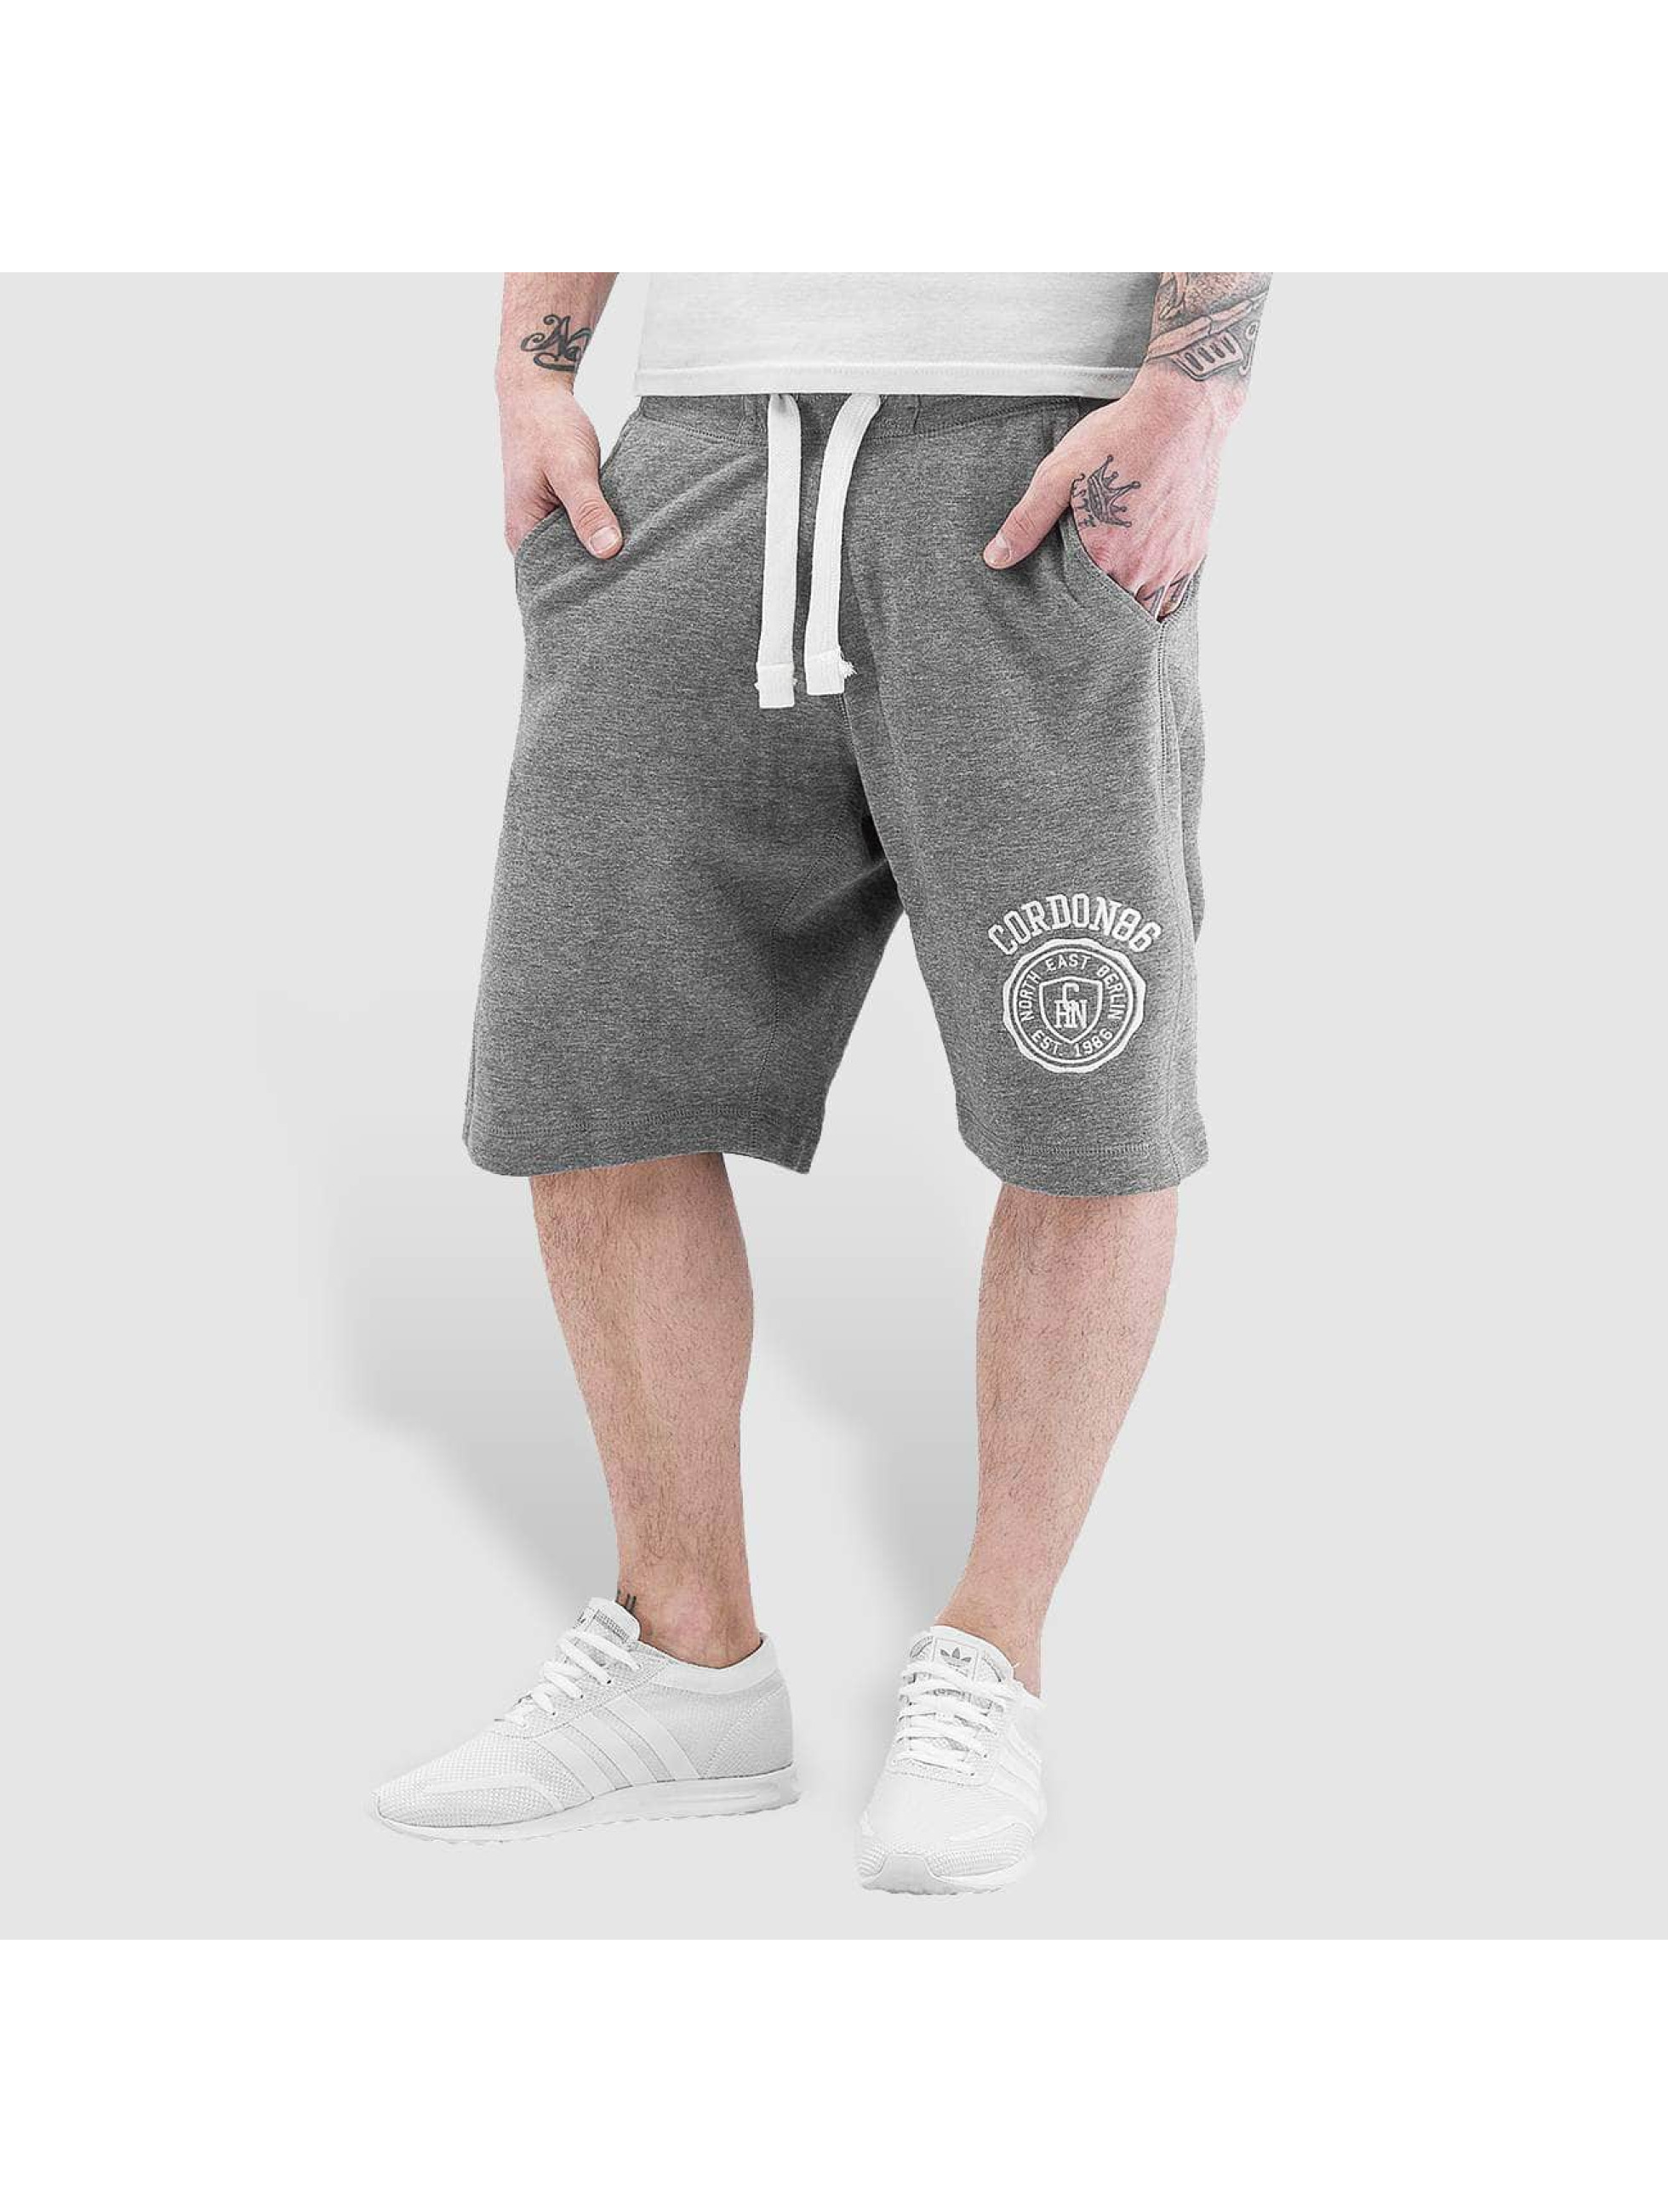 Cordon Männer Shorts Tim in grau